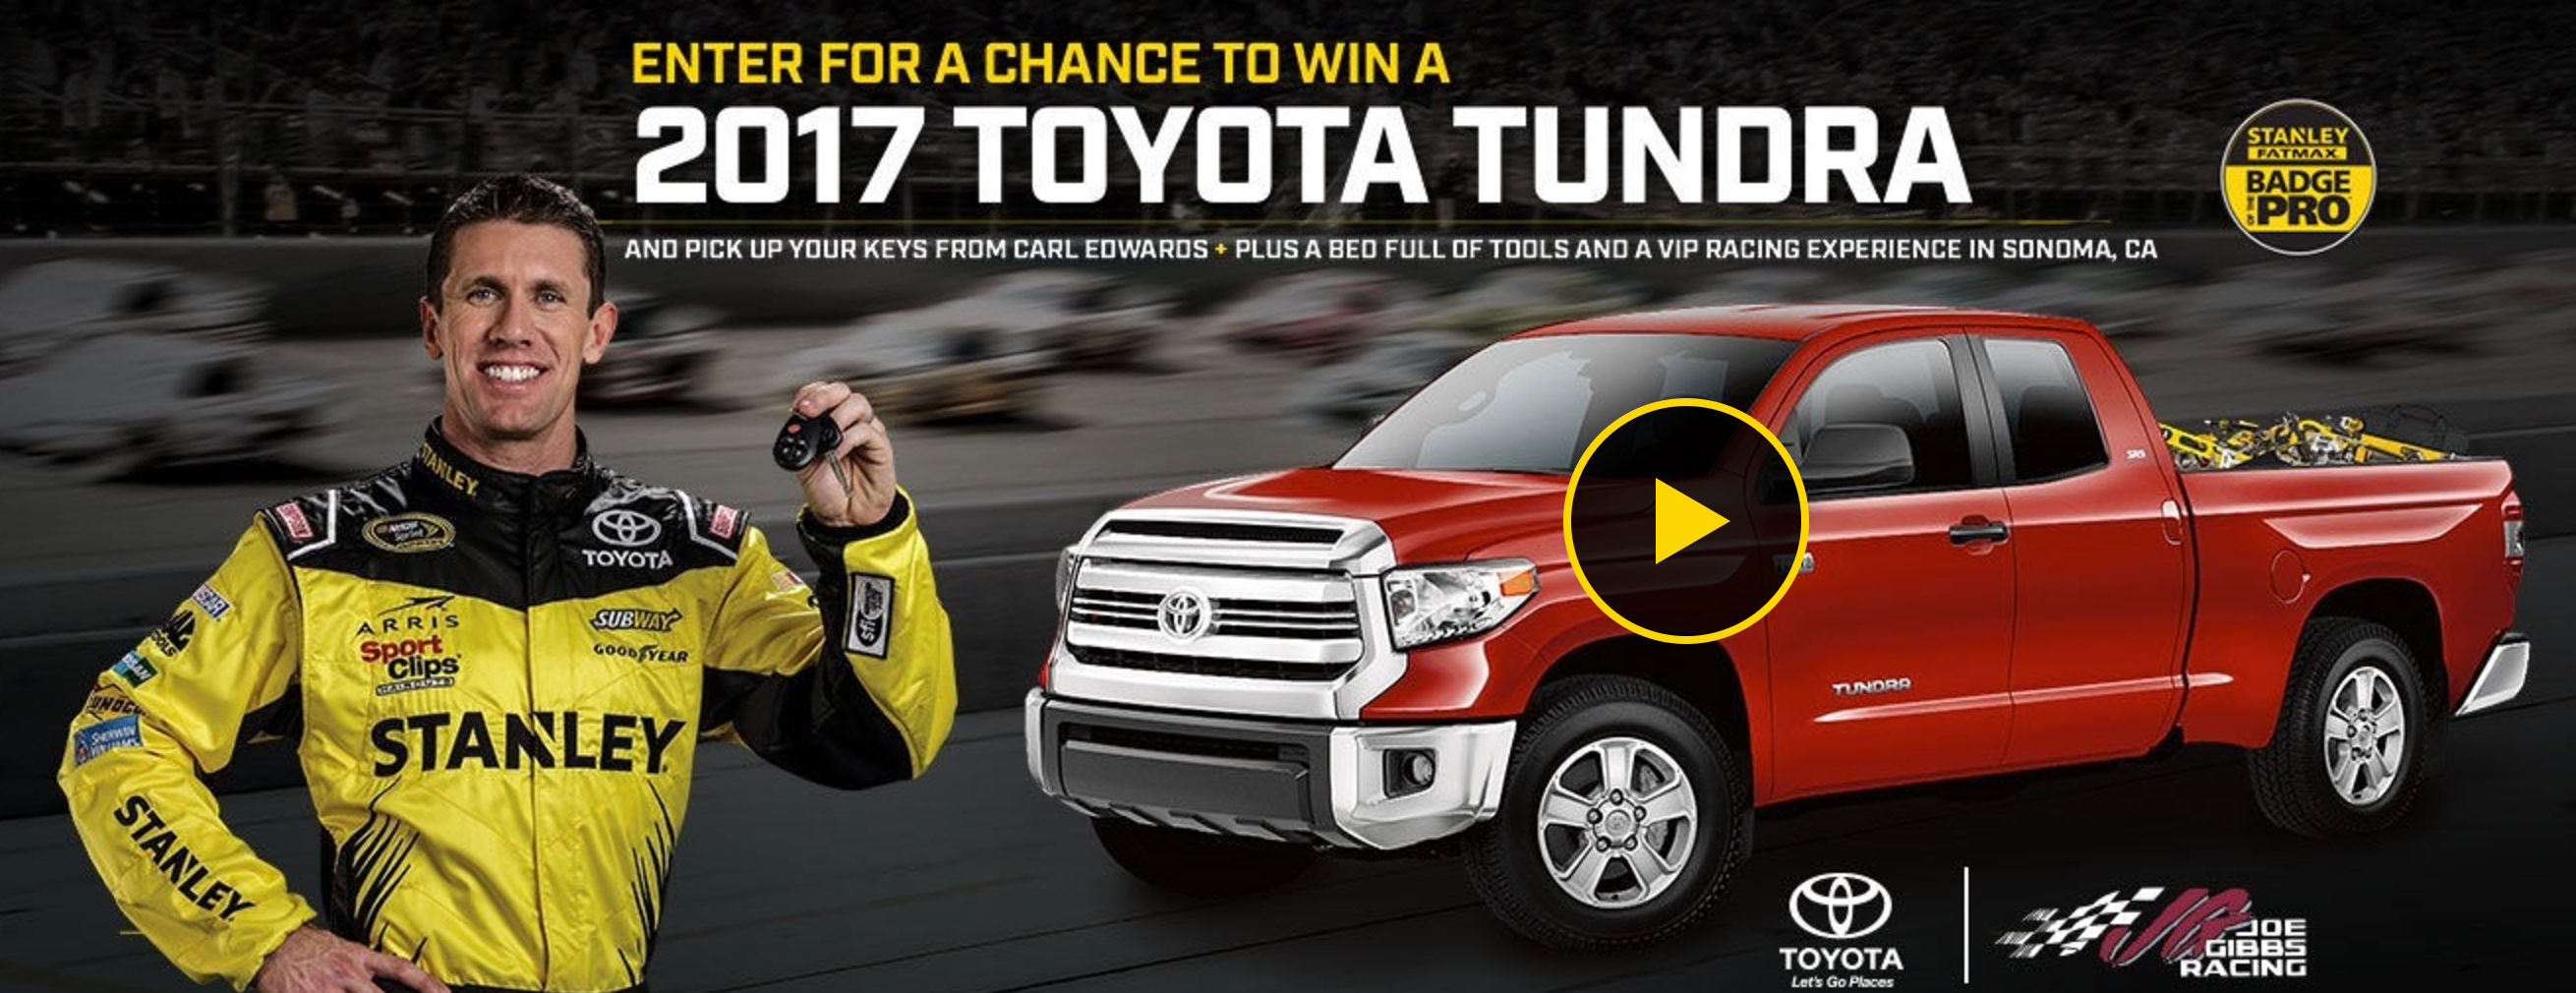 Win a 2017 Toyota Tundra on Stanley Tools Build Your Tundra